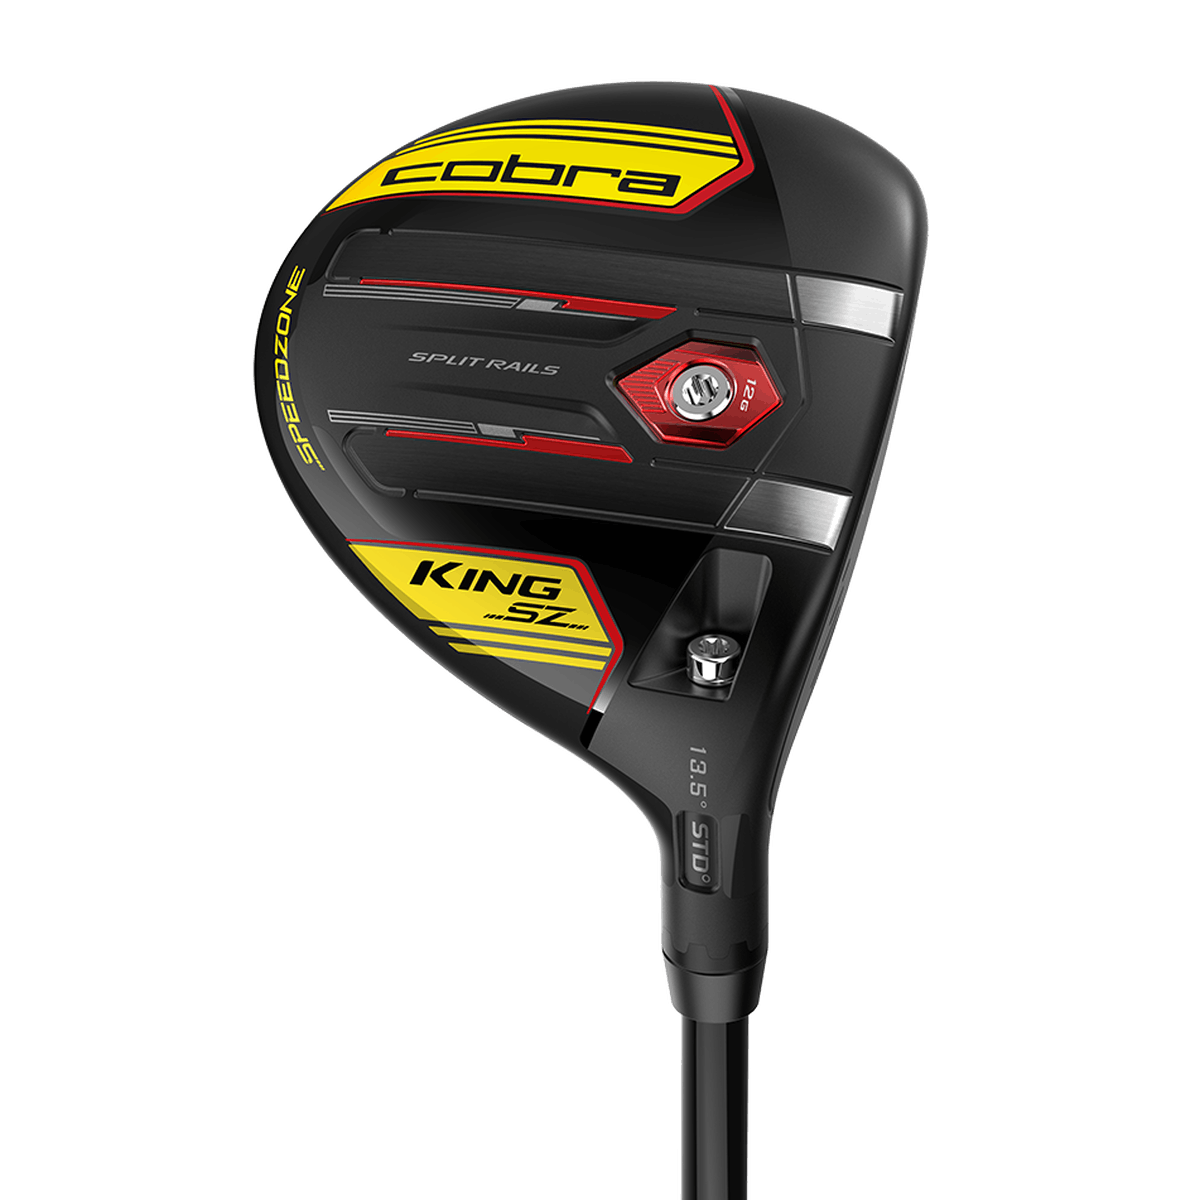 Cobra KING SpeedZone Big Tour Fairway Wood